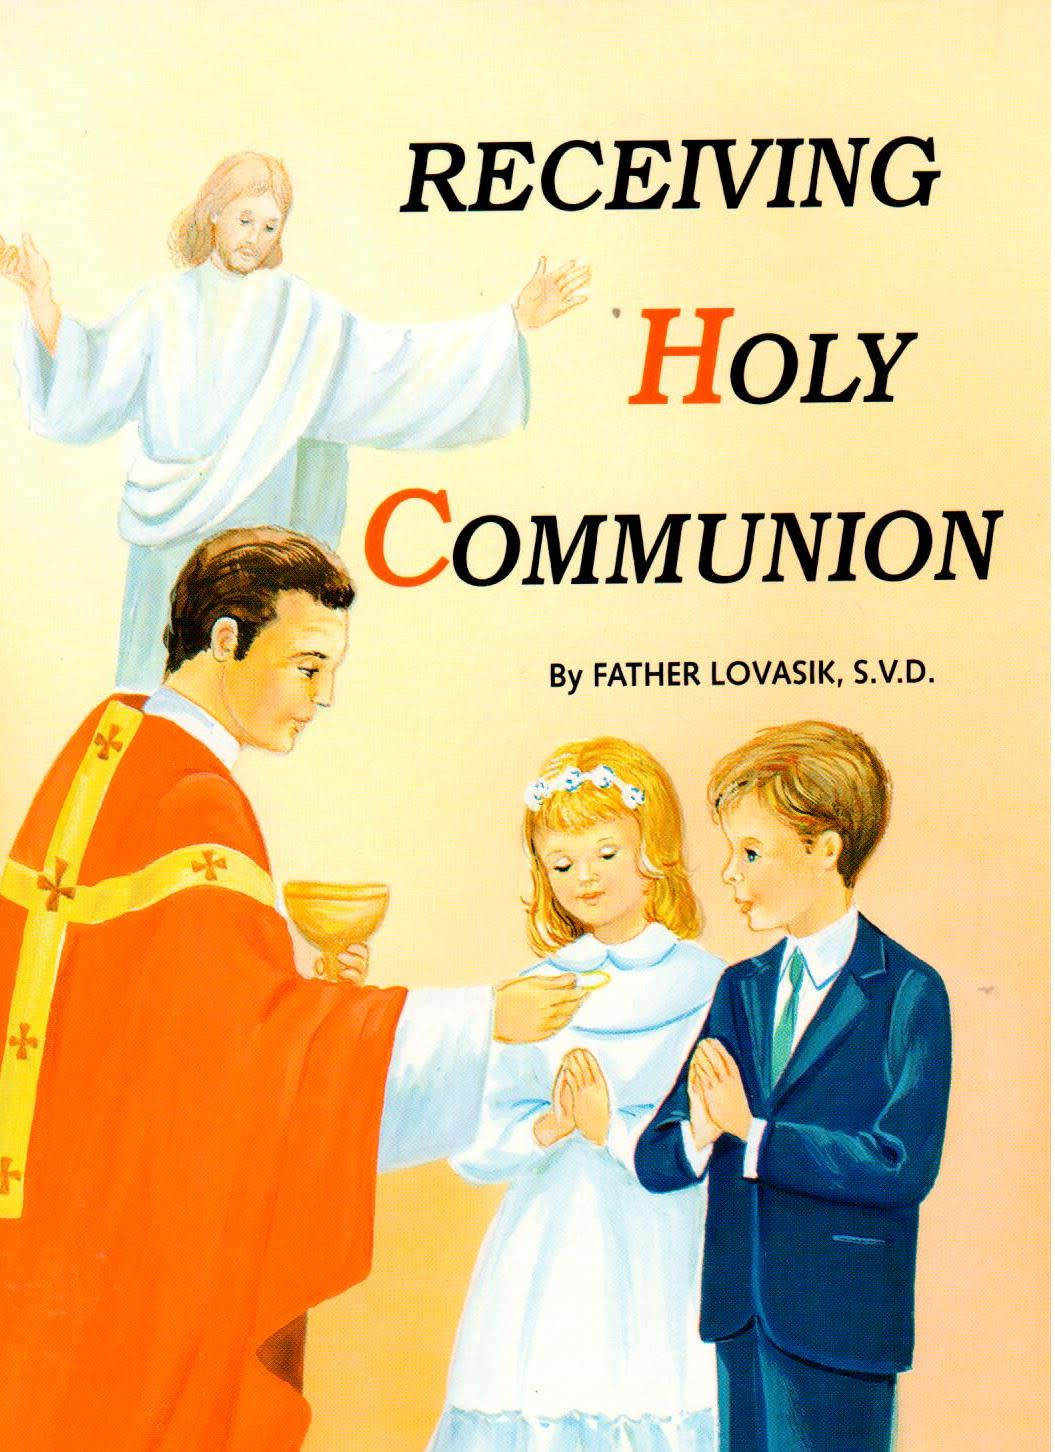 Receiving Holy Communion (St. Joseph Picture Books)